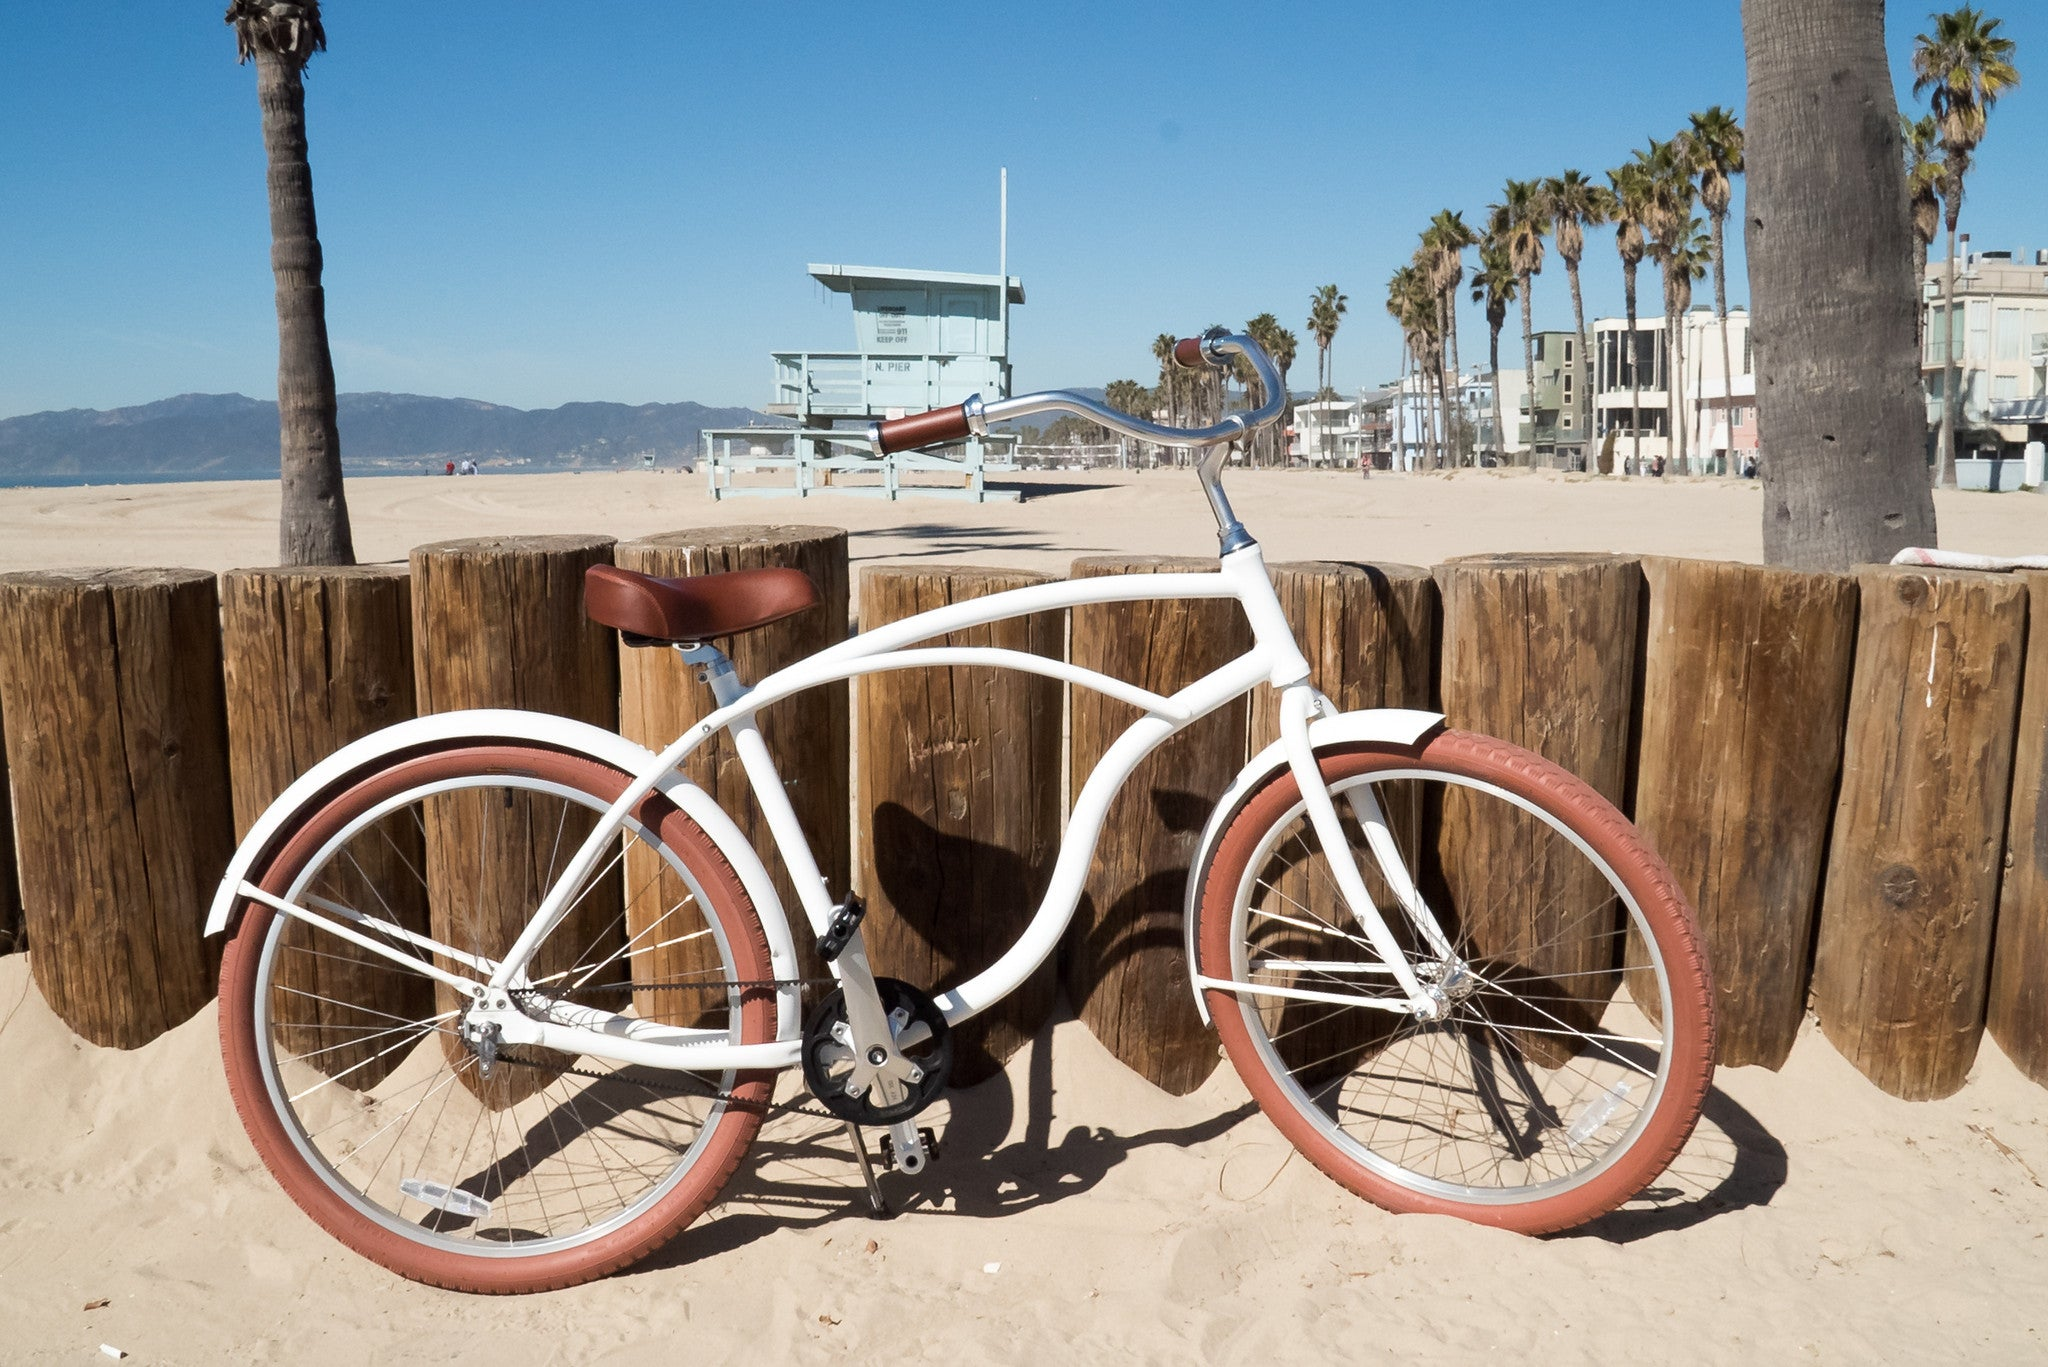 """THE BEST BEACH CRUISER EVER.."" PRIORITY BICYCLES PRESS FROM GIZMODO, INC. MAGAZINE, TECH CRUNCH AND OTHERS"